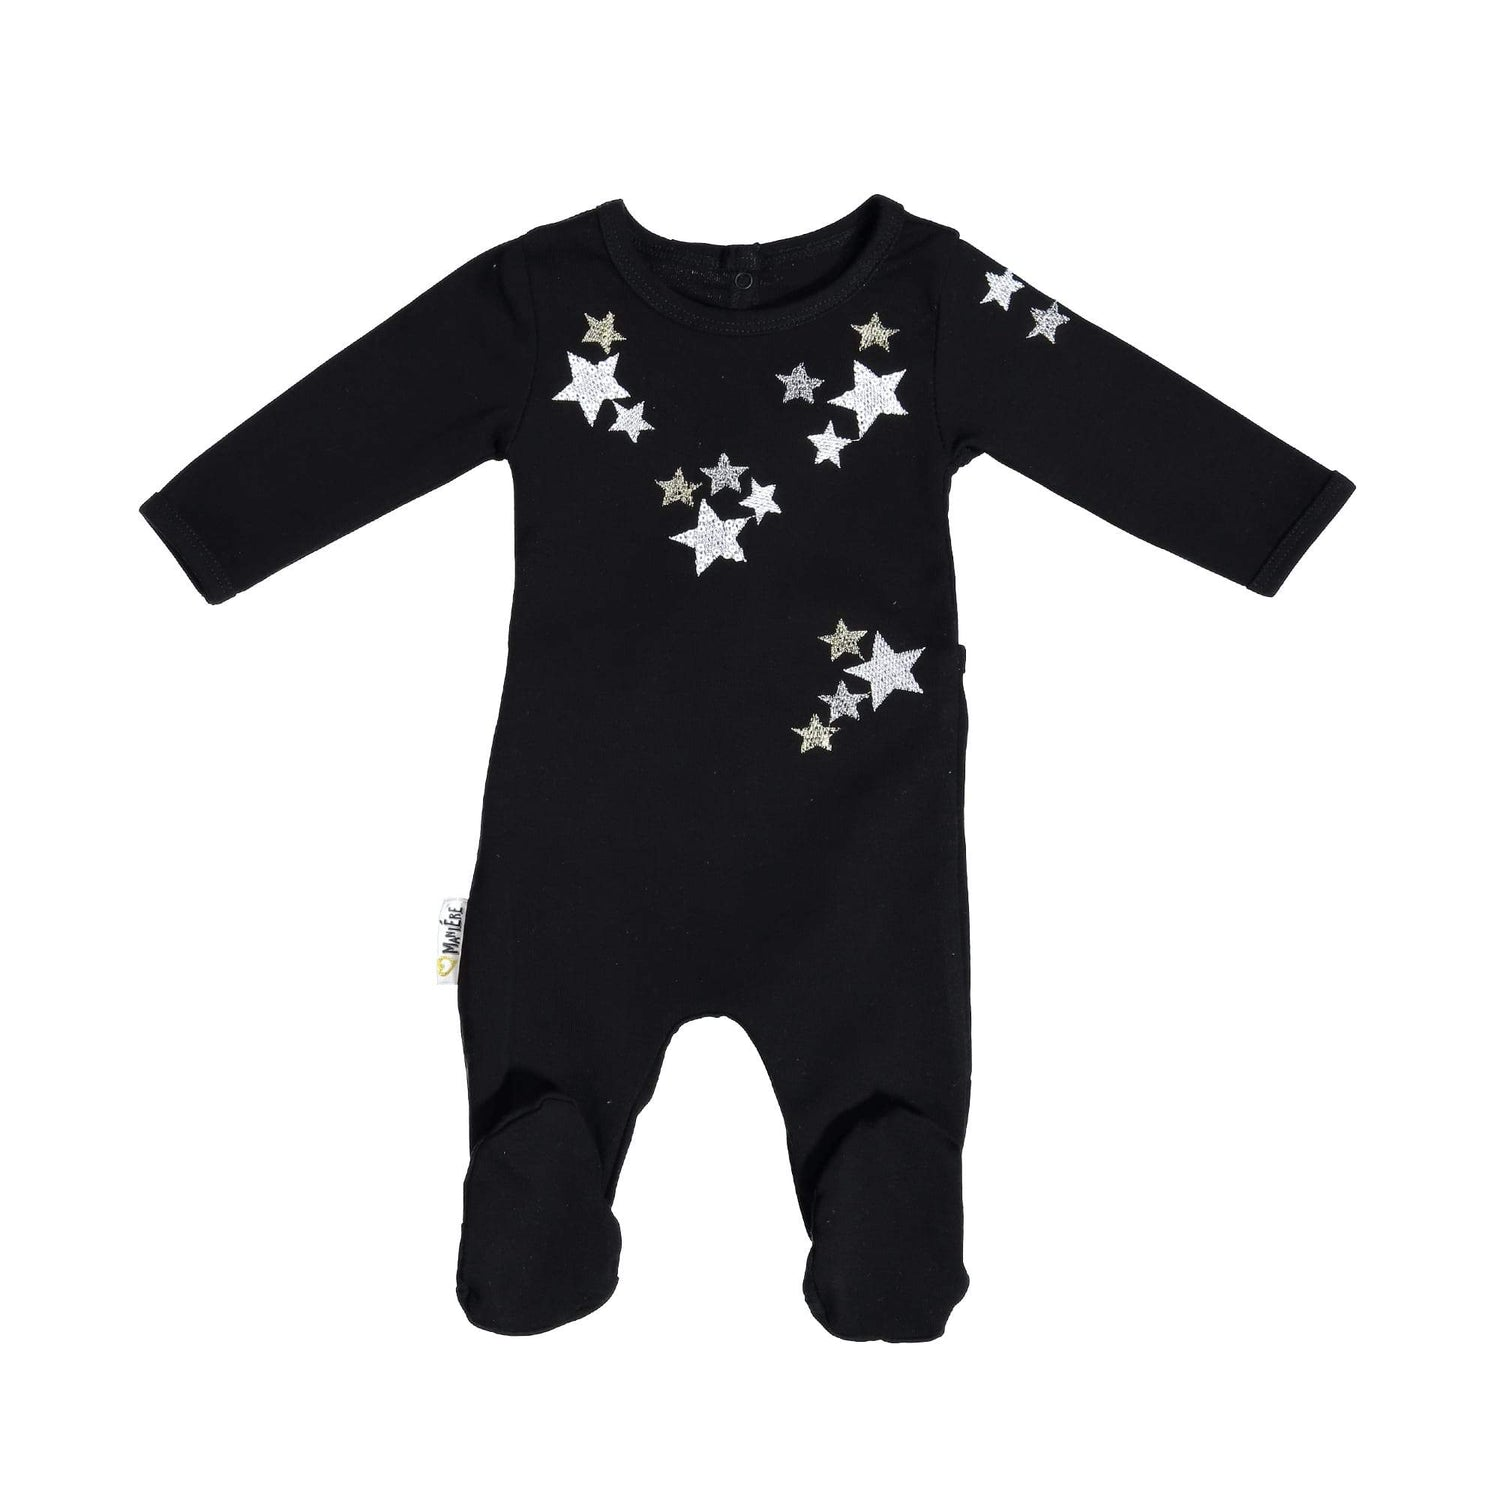 Embroidered Star Footie Maniere Accessories Black 3 Month